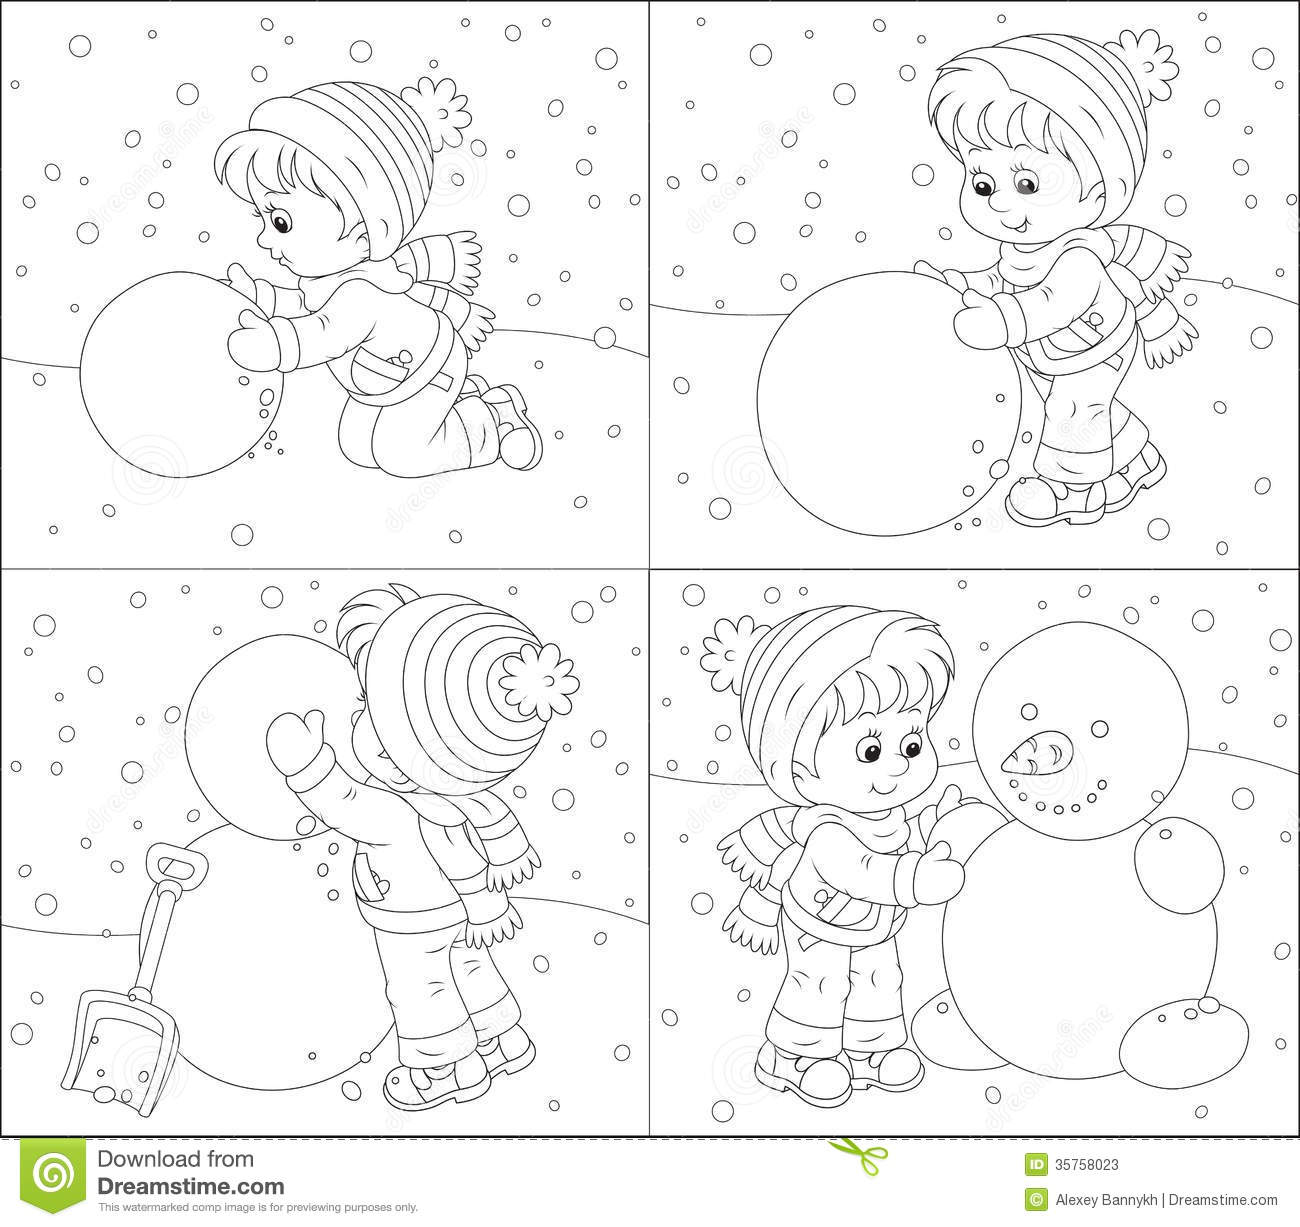 ... , black and white outline vector illustrations for a coloring book